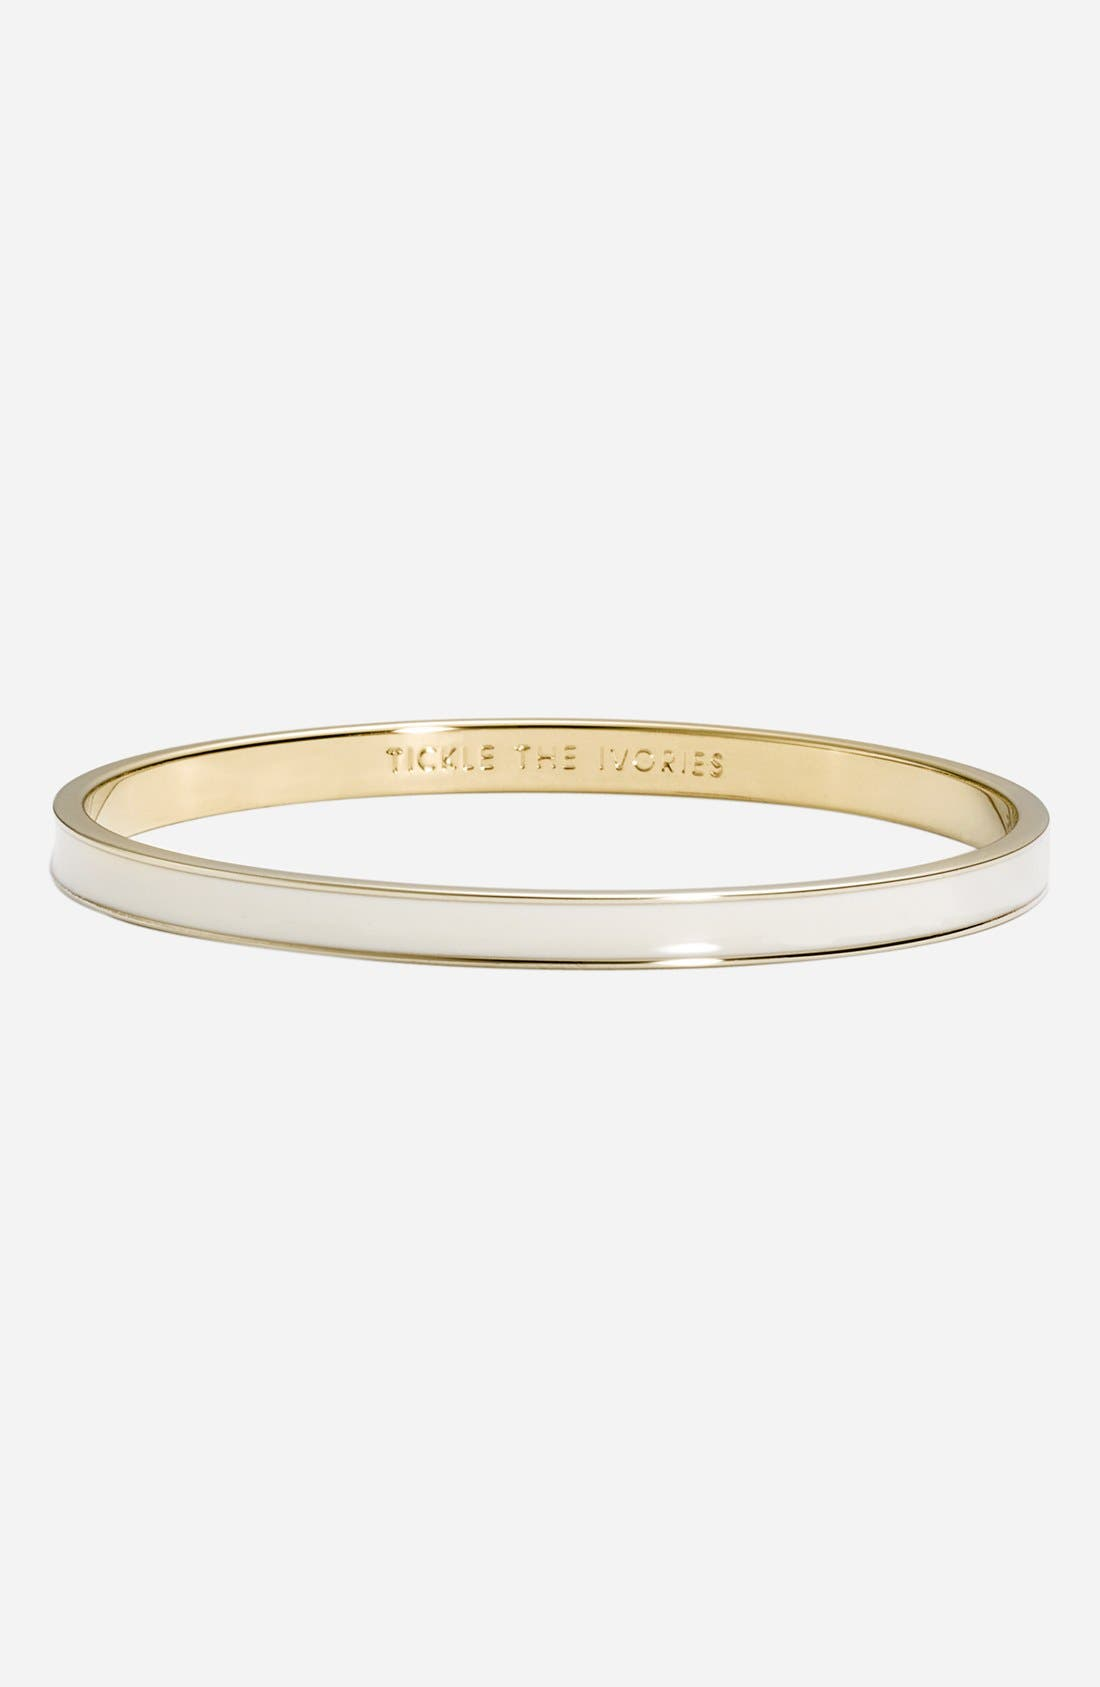 Main Image - kate spade new york 'idiom - hot to trot' ultra thin enamel bangle